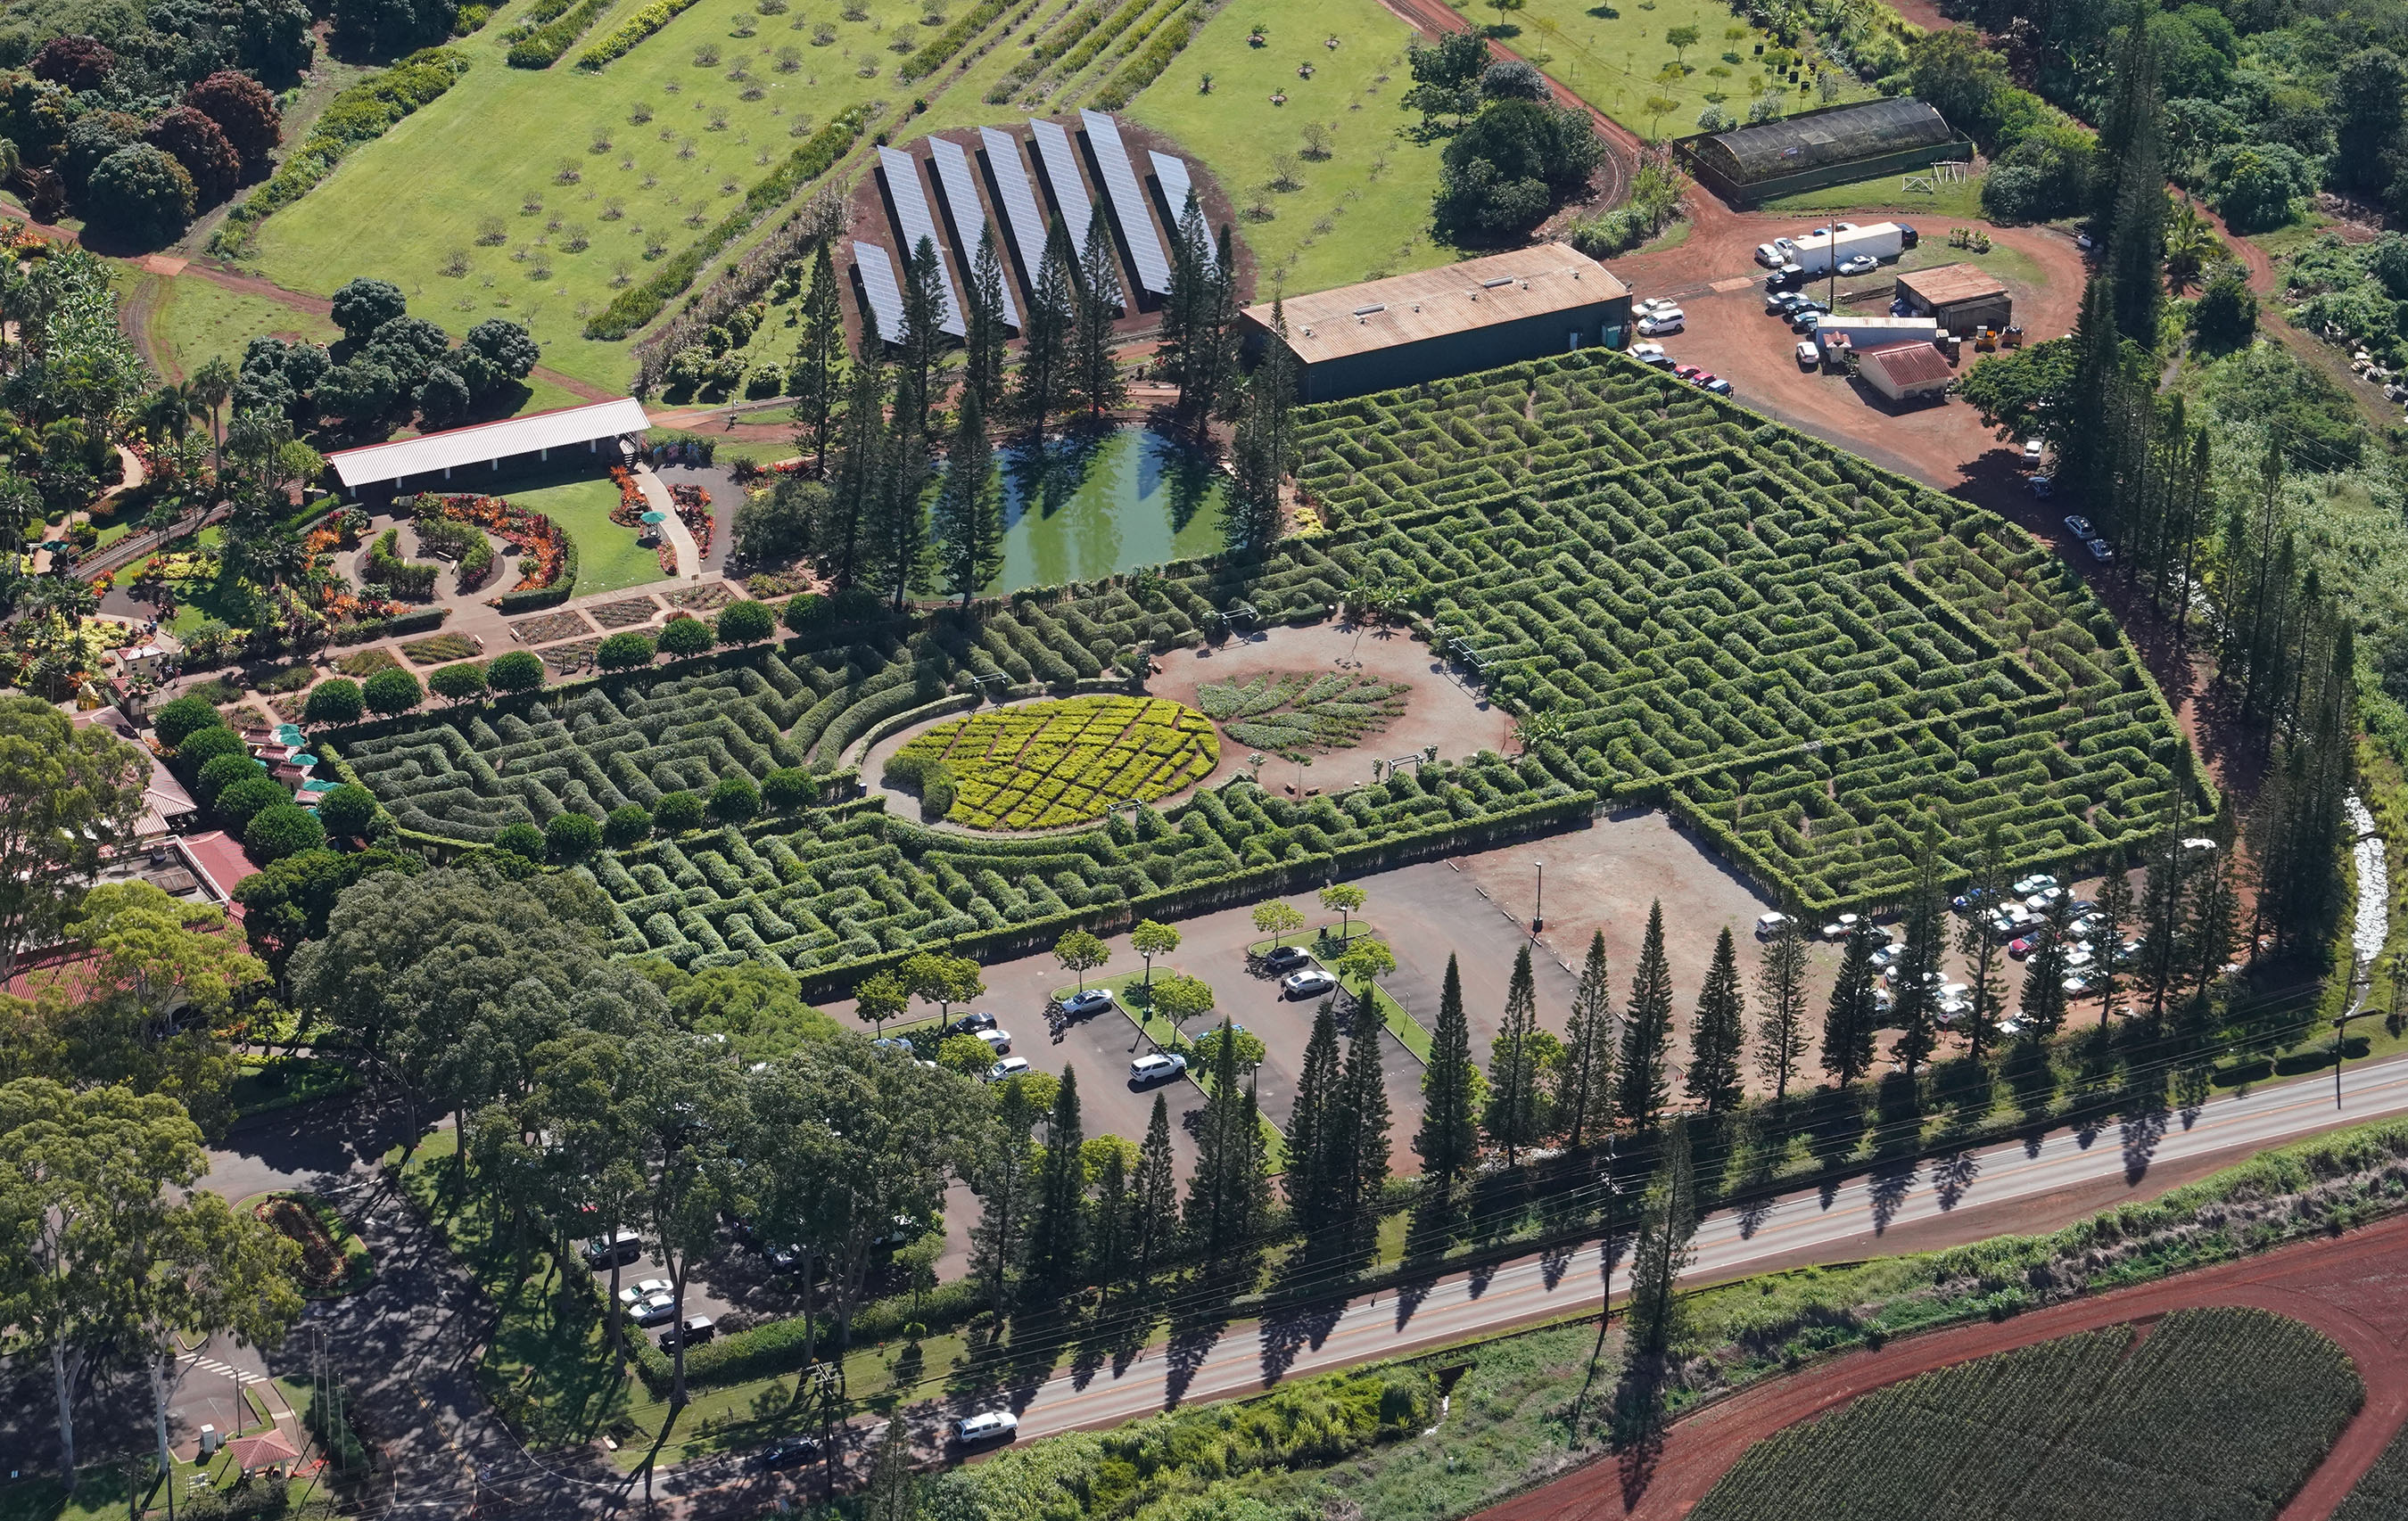 Pineapple Garden Maze Dole Plantation Aerial Honolulu Civil Beat